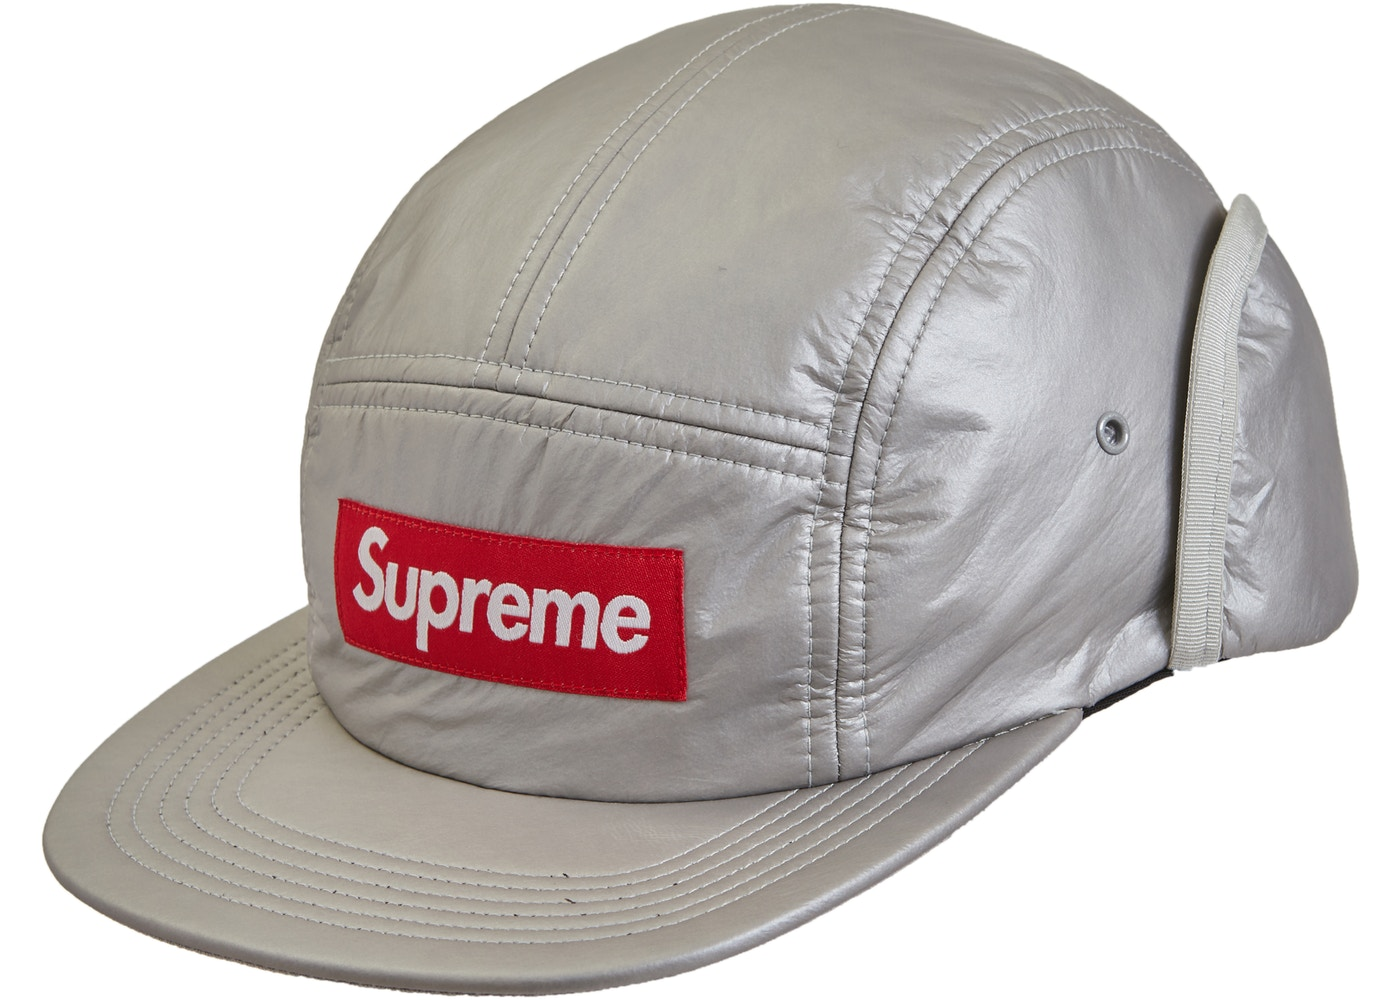 9718d6d5abf Streetwear - Supreme Headwear - New Lowest Asks